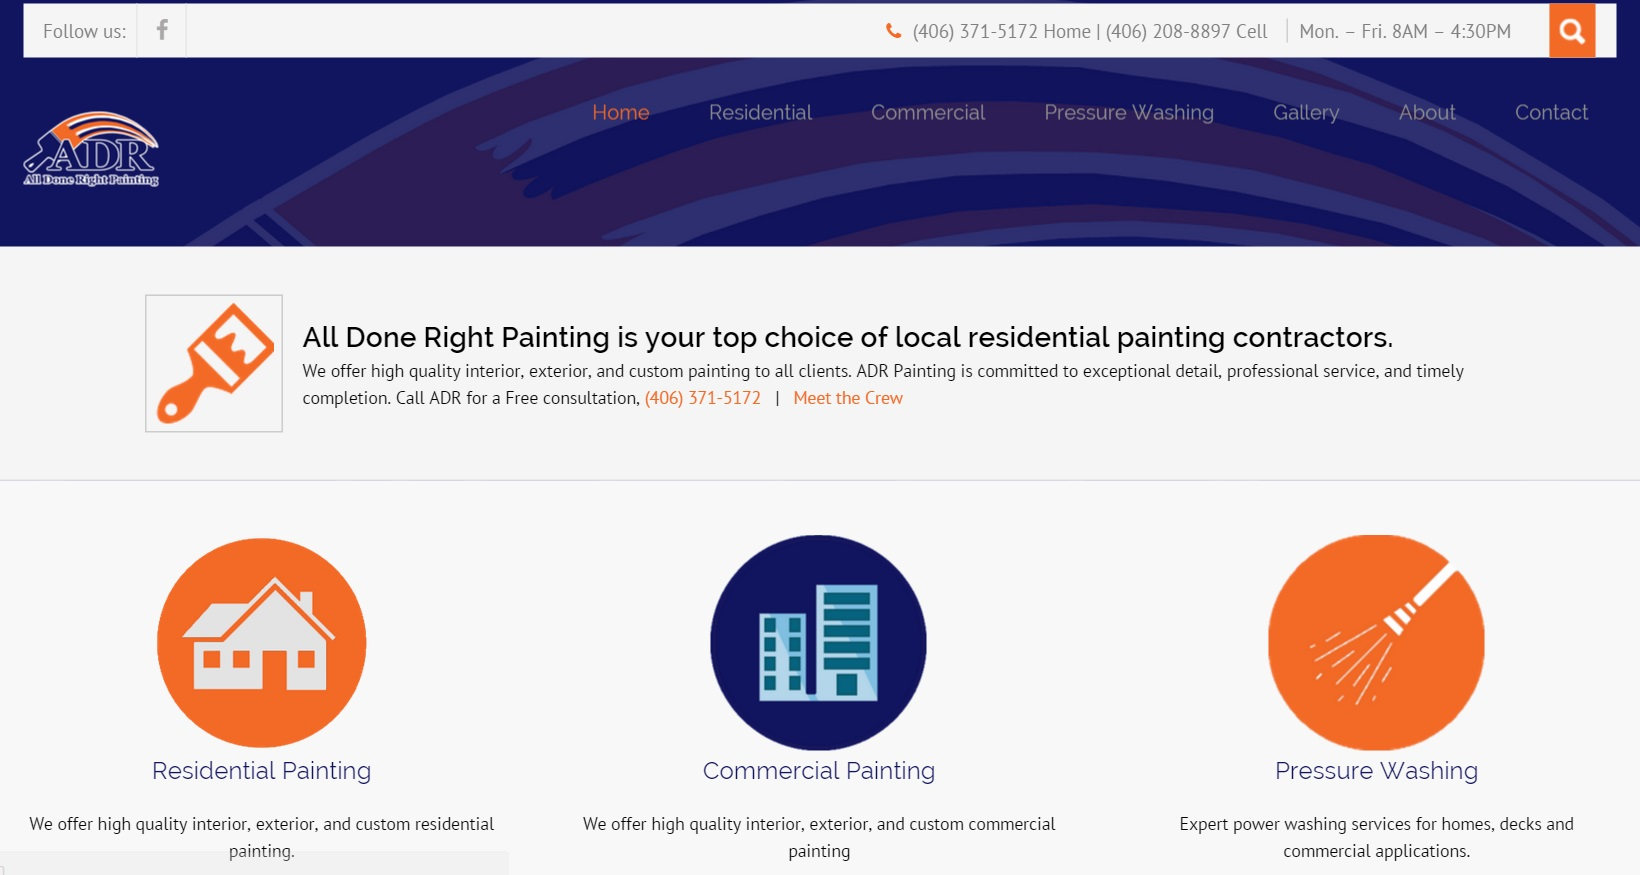 ADR Painting Website Design by SkyPoint Studios